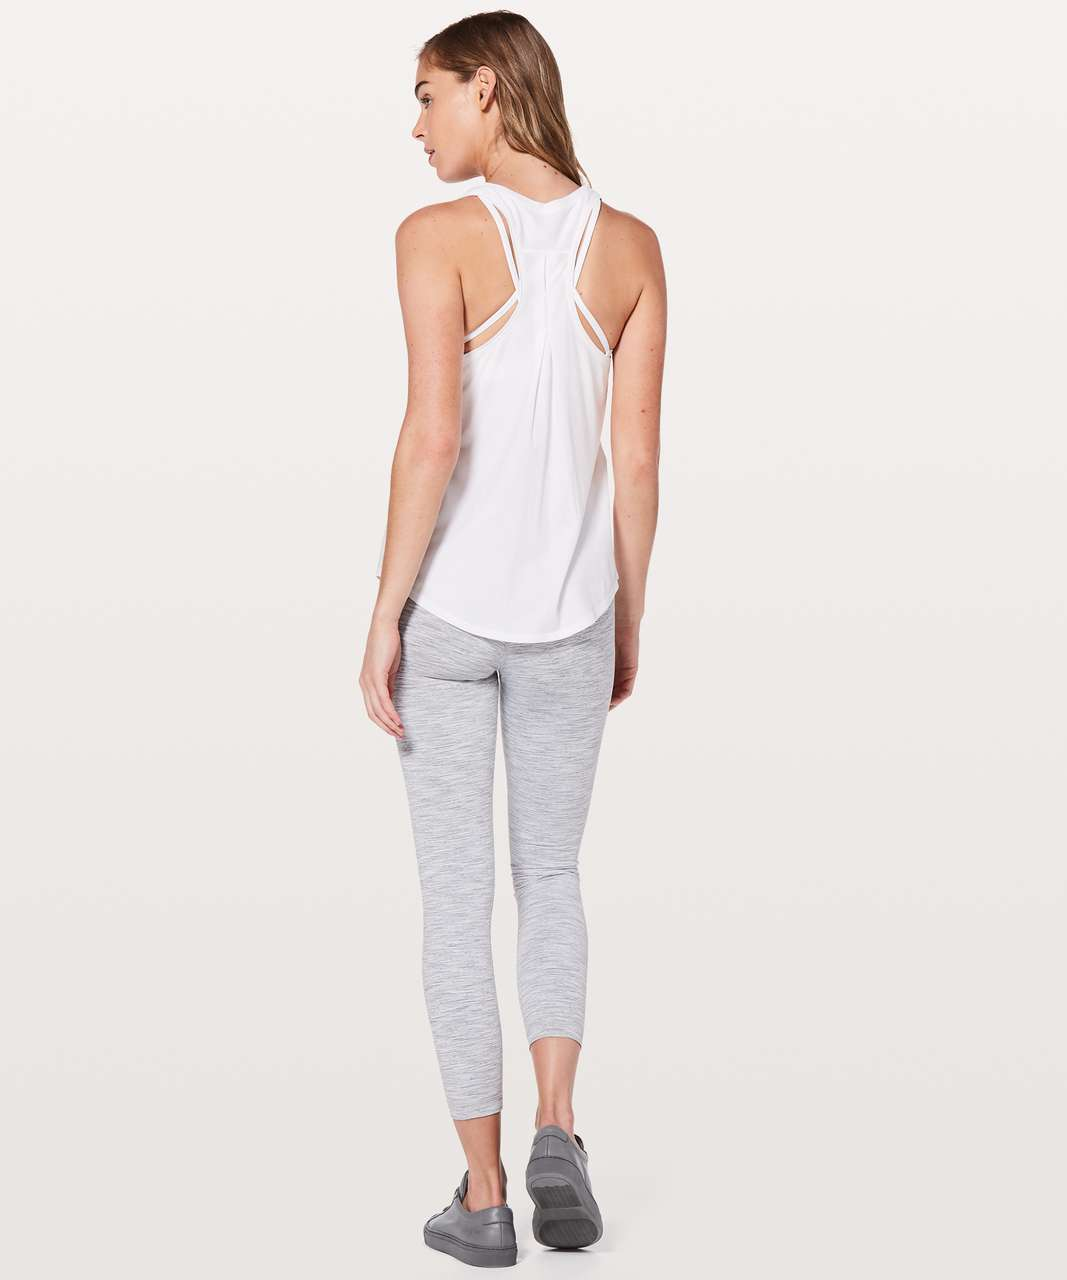 Lululemon Love Tank *Pleated - White